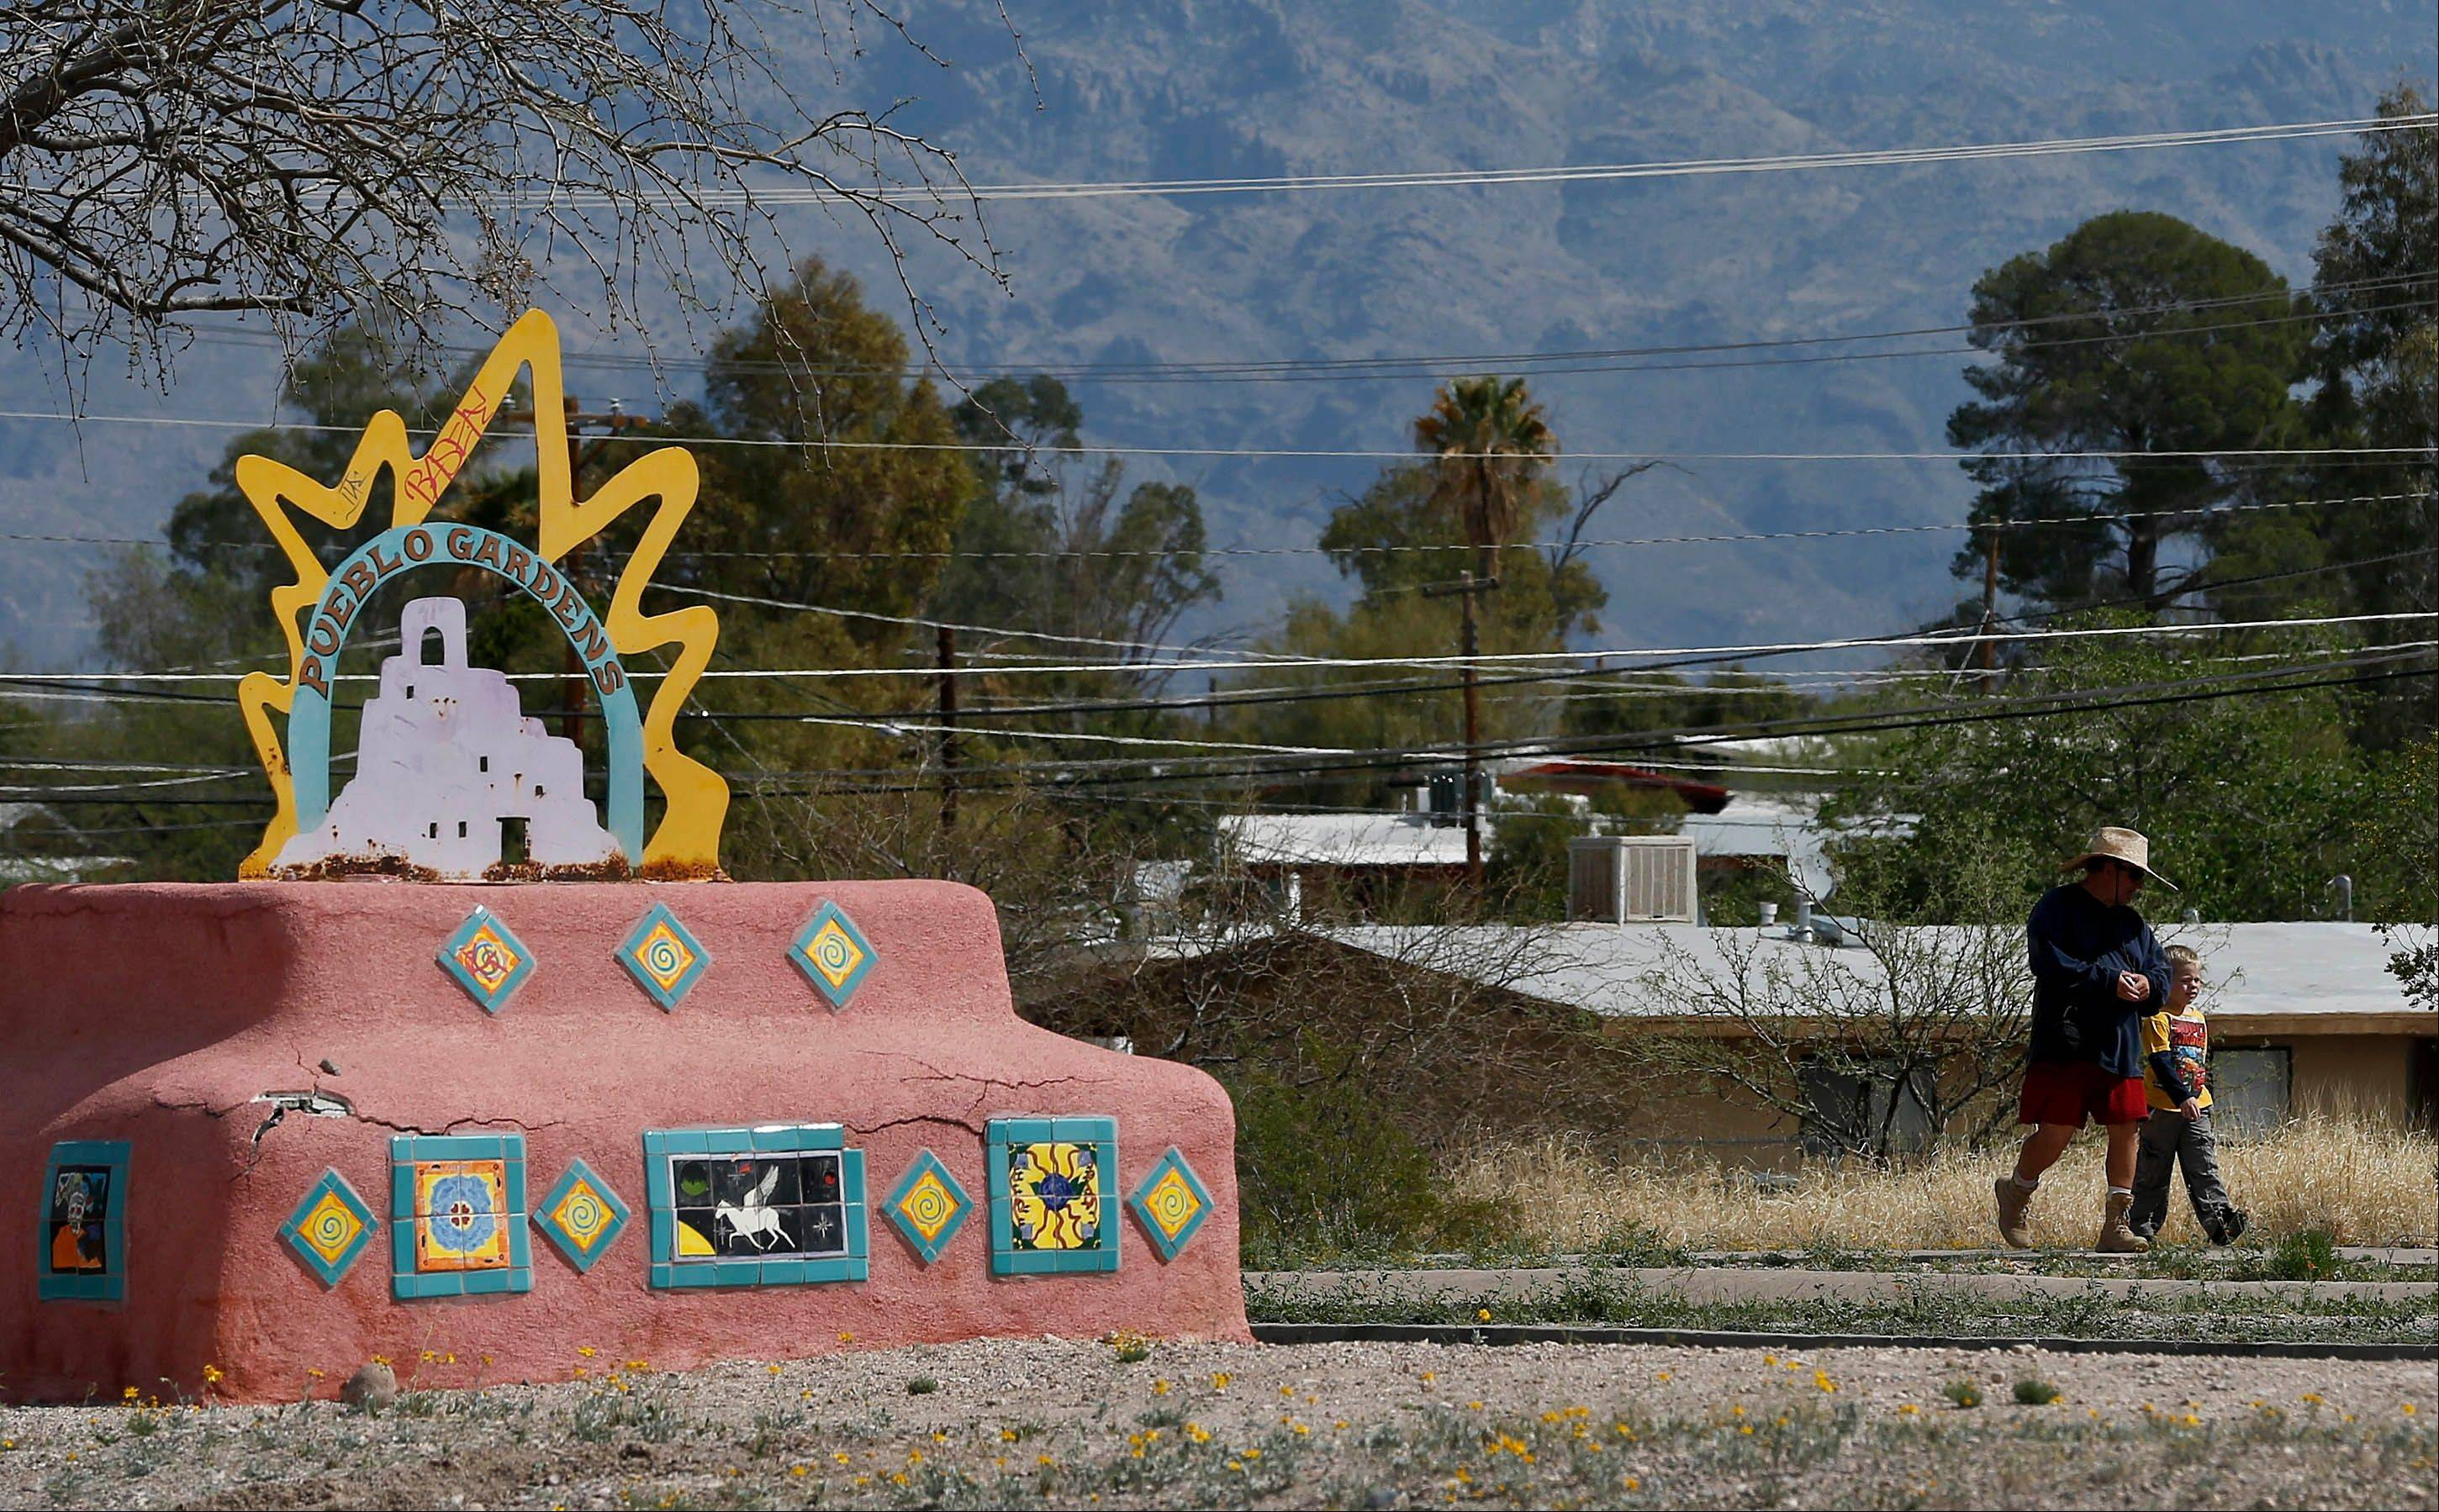 Residents of Pueblo Gardens walk past a sign Thursday for the Tucson, Ariz. development.